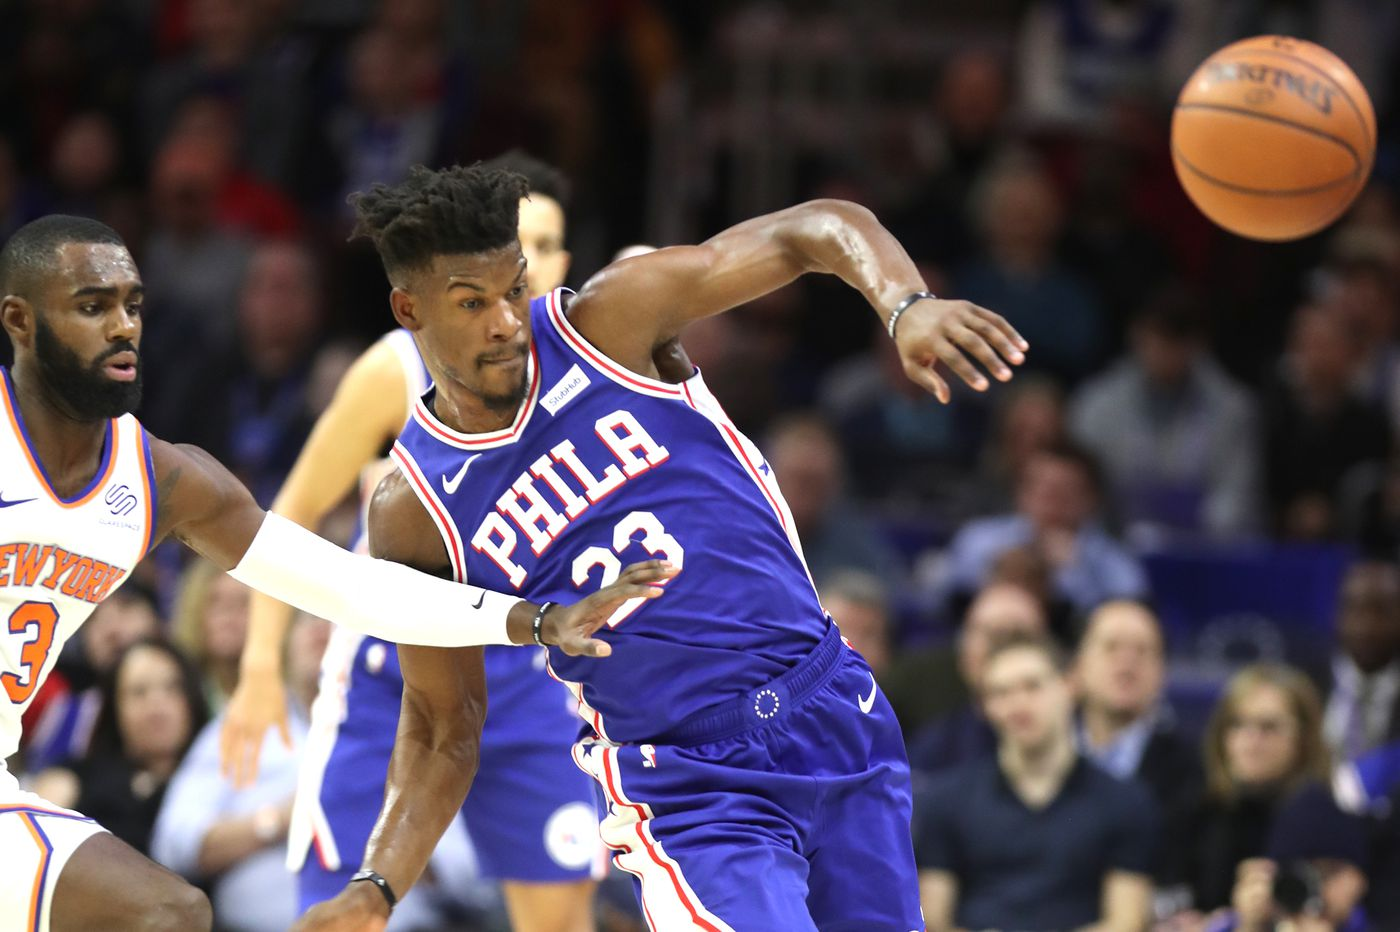 Sixers ride hot start to 117-91 victory over Knicks